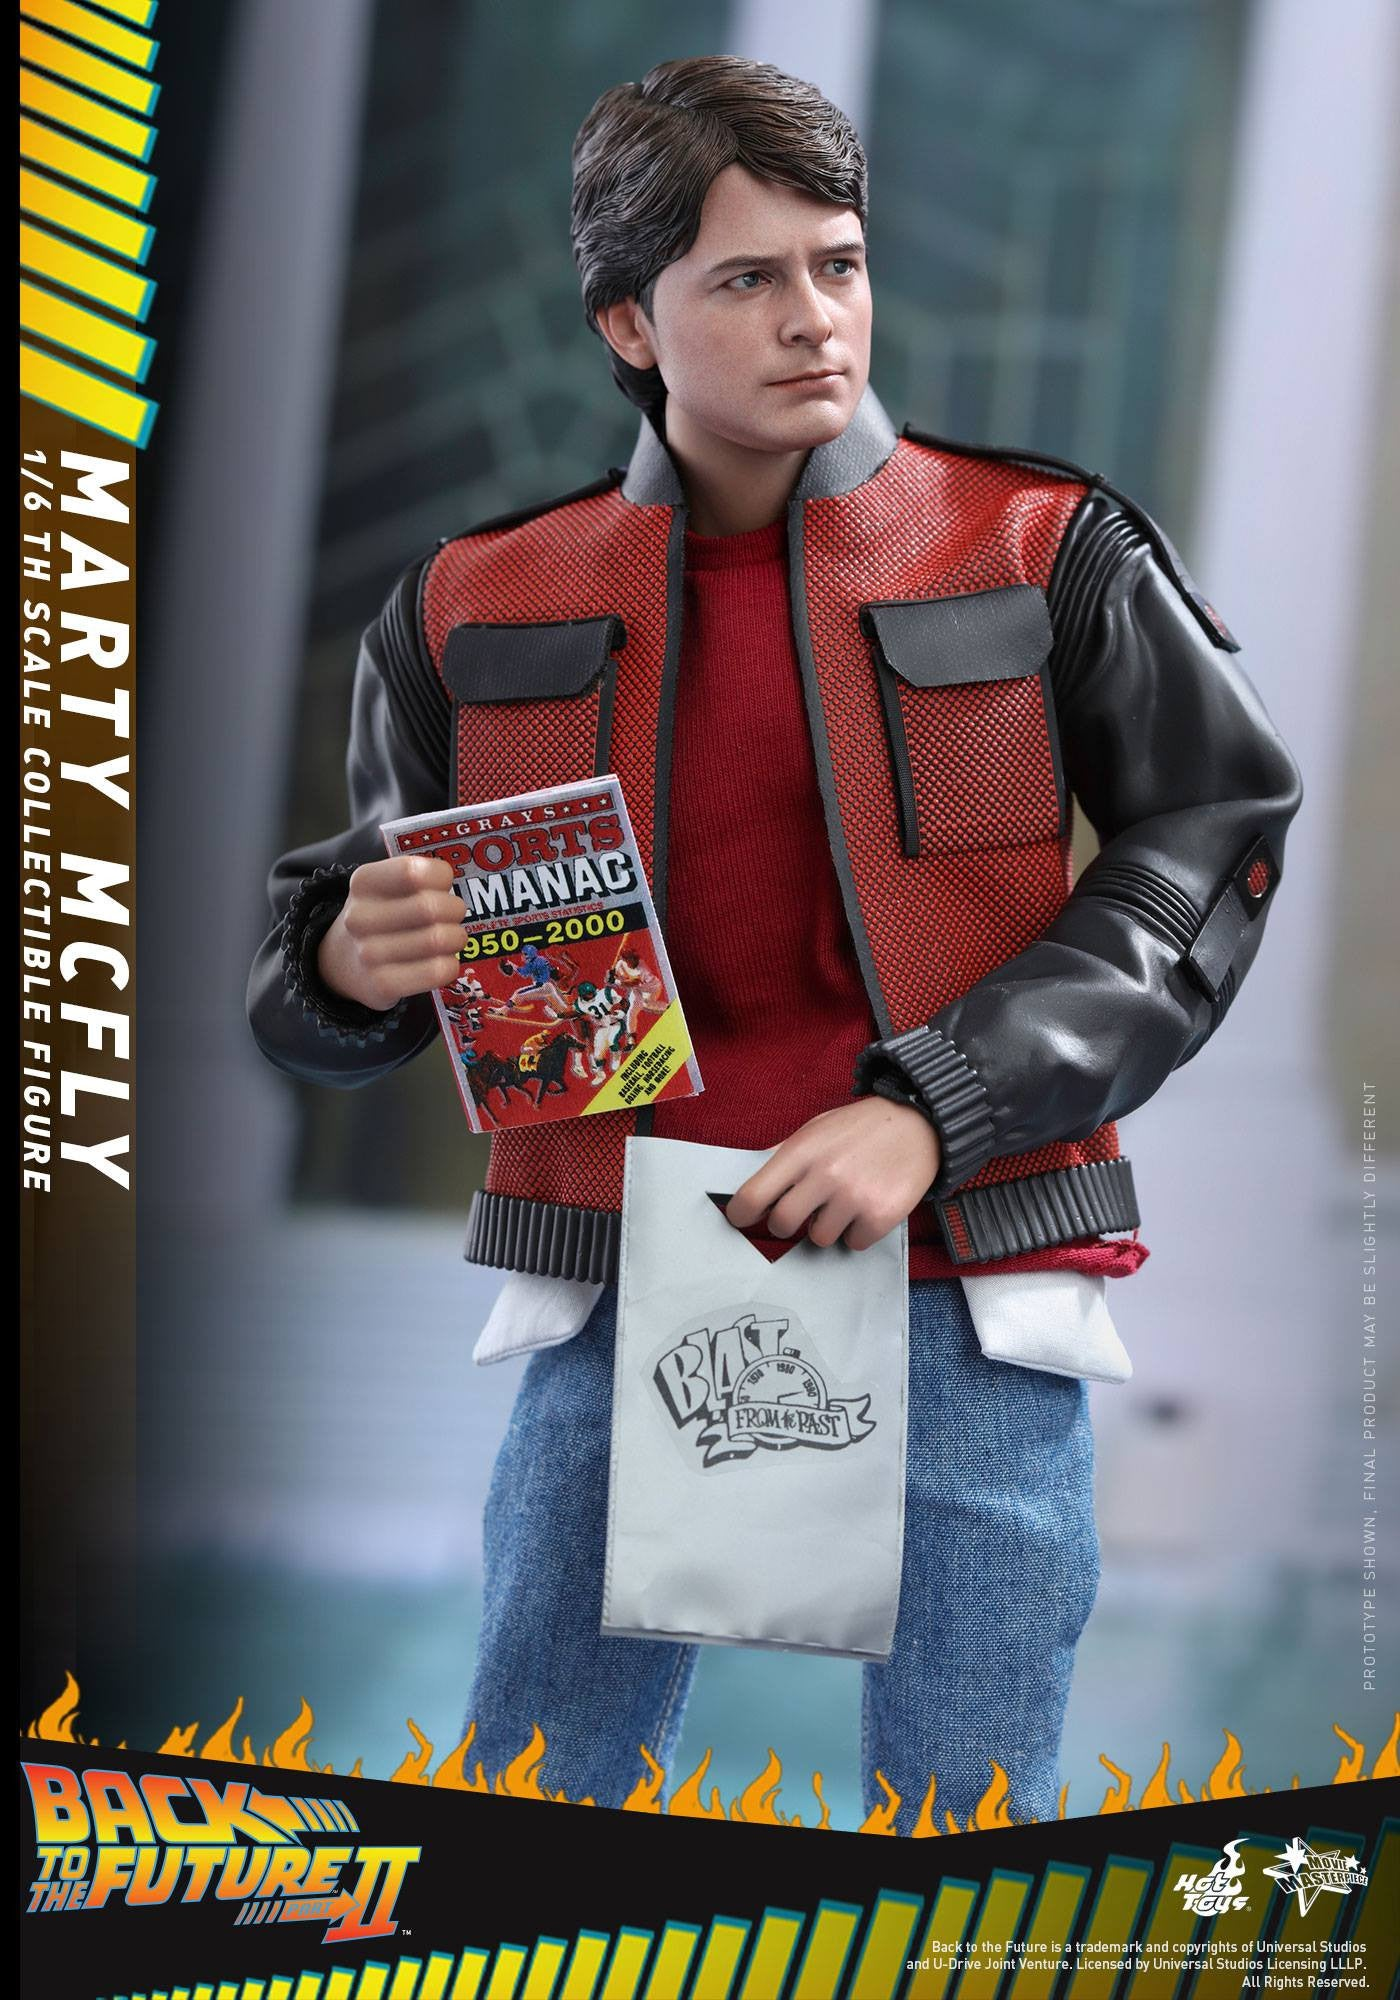 Hot Toys - MMS379 - Back to The Future Part II - Marty McFly (Normal Edition) - Marvelous Toys - 12